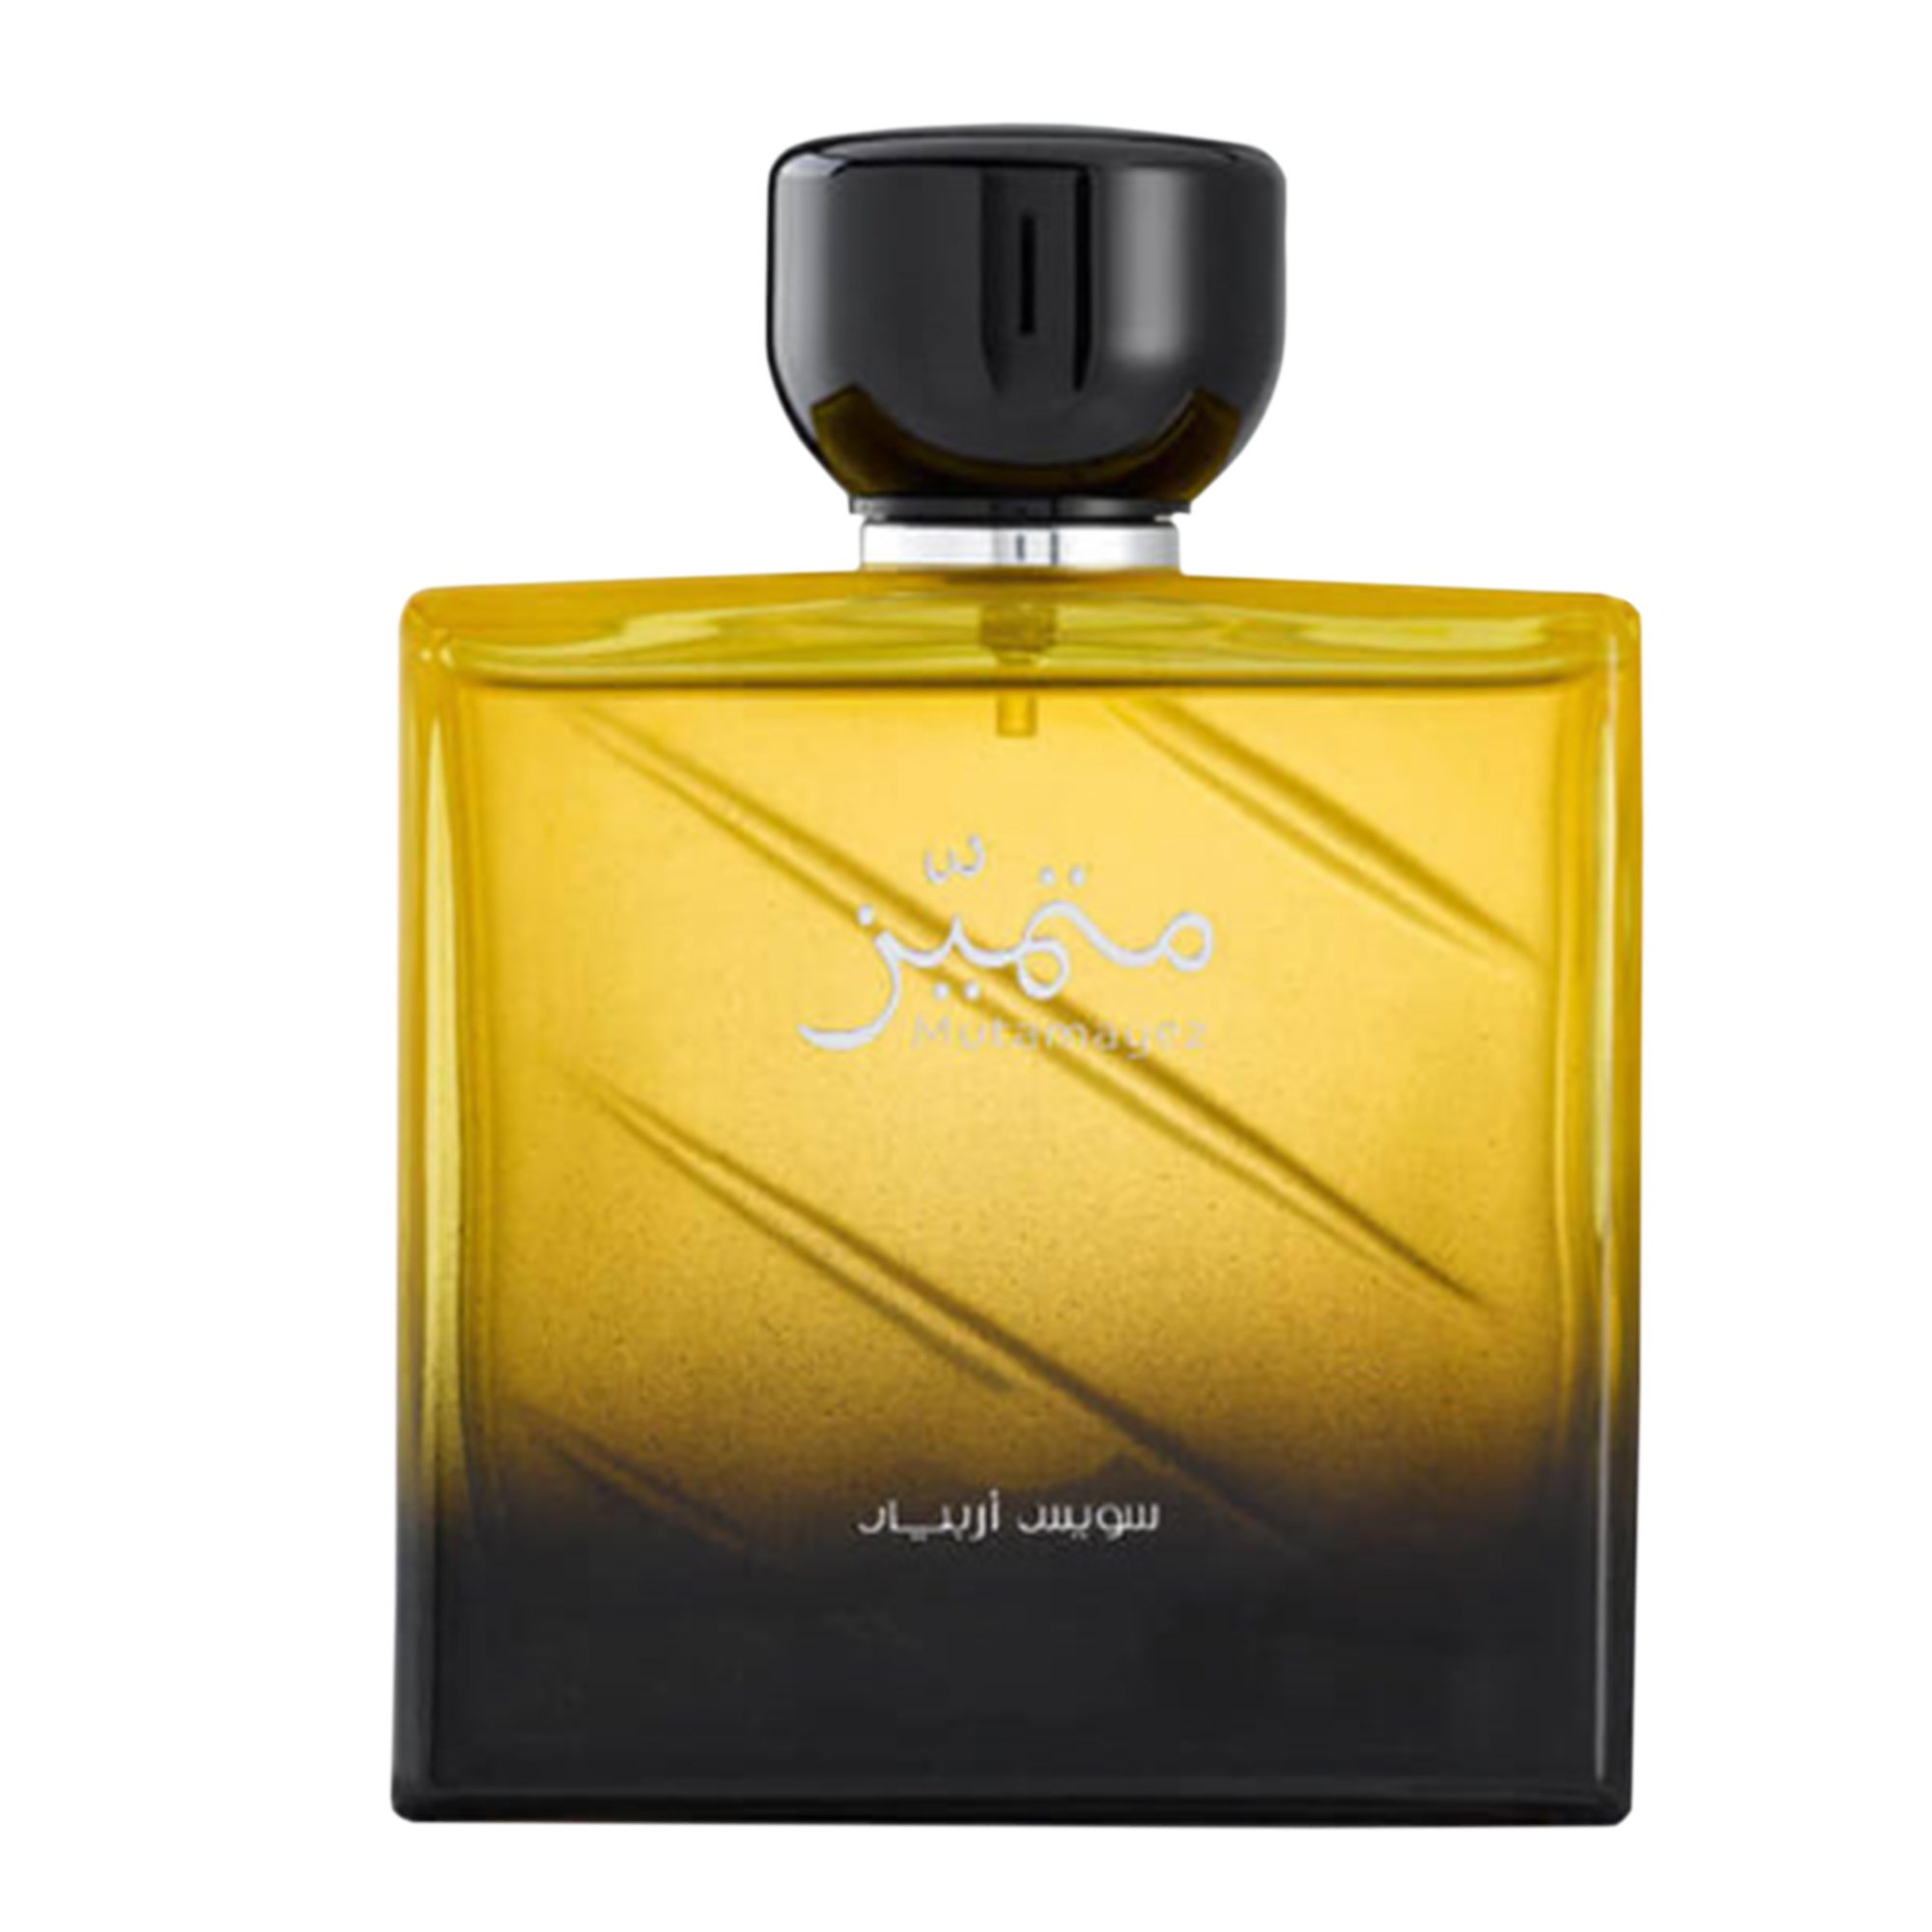 MUTAMAYEZ (EDP) Eau De Parfum For Men - 100 ML by Swiss Arabian